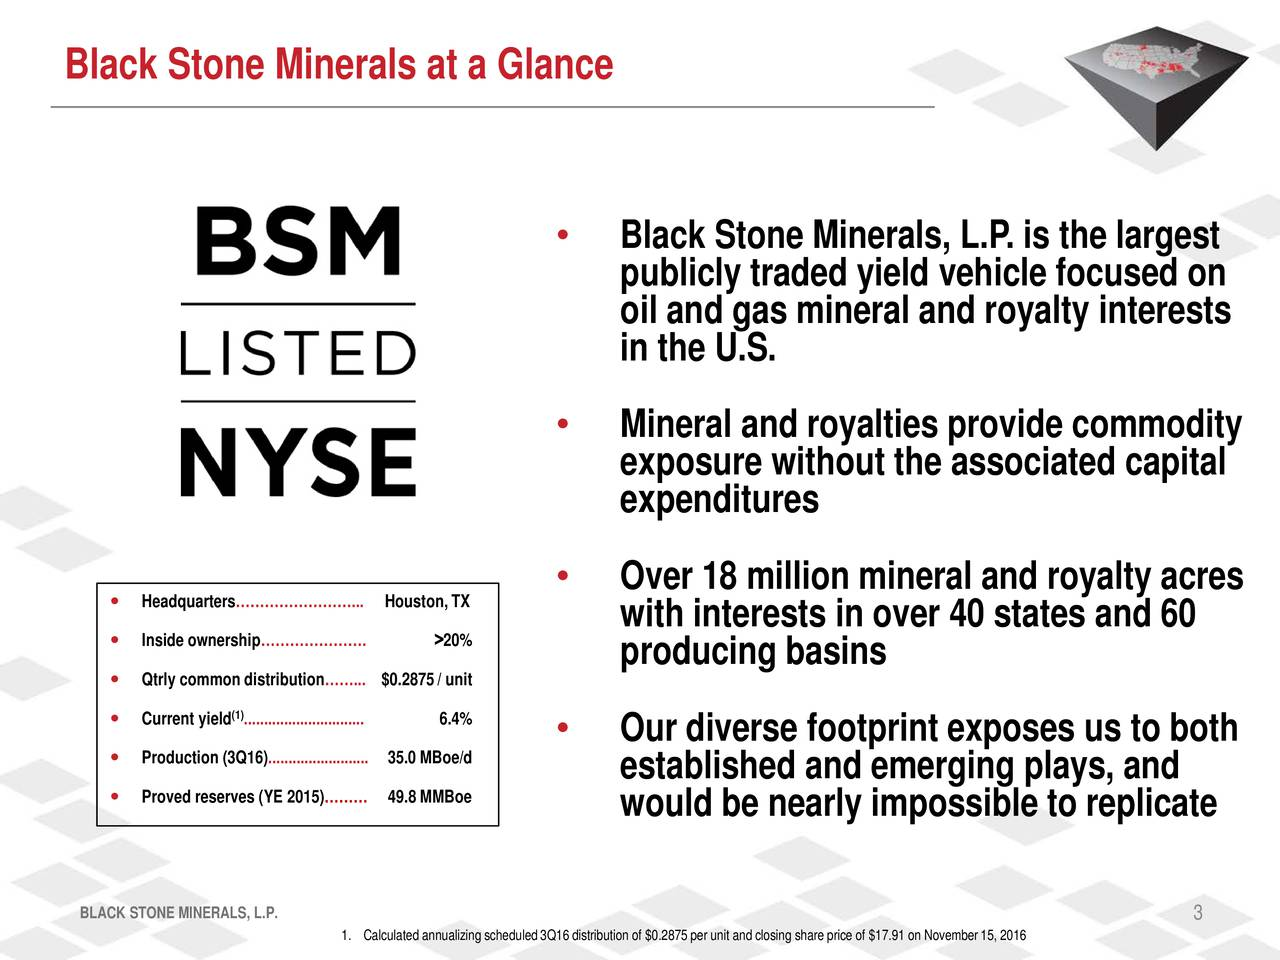 Black Stone Minerals, L.P. is the largest publicly traded yield vehicle focused on oil and gas mineral and royalty interests in the U.S. Mineral and royalties provide commodity exposure without the associated capital expenditures Headquarters...Houston, TX  Over 18 million mineral and royalty acres with interests in over 40 states and 60 Inside ownership. >20% Qtrly common distribut$0.2875 / unit producing basins Current yield ..............6.4%............ Production (3Q16)......35.0 MBoe/d........ Our diverse footprint exposes us to both established and emerging plays, and Proved reserves (YE 20149.8 MMBoe would be nearly impossible to replicate BLACK STONE MINERALS, L.P. 3 1. Calculated annualizing scheduled 3Q16 distribution of $0.2875 per unit and closing share price of $17.91 on November 15, 2016